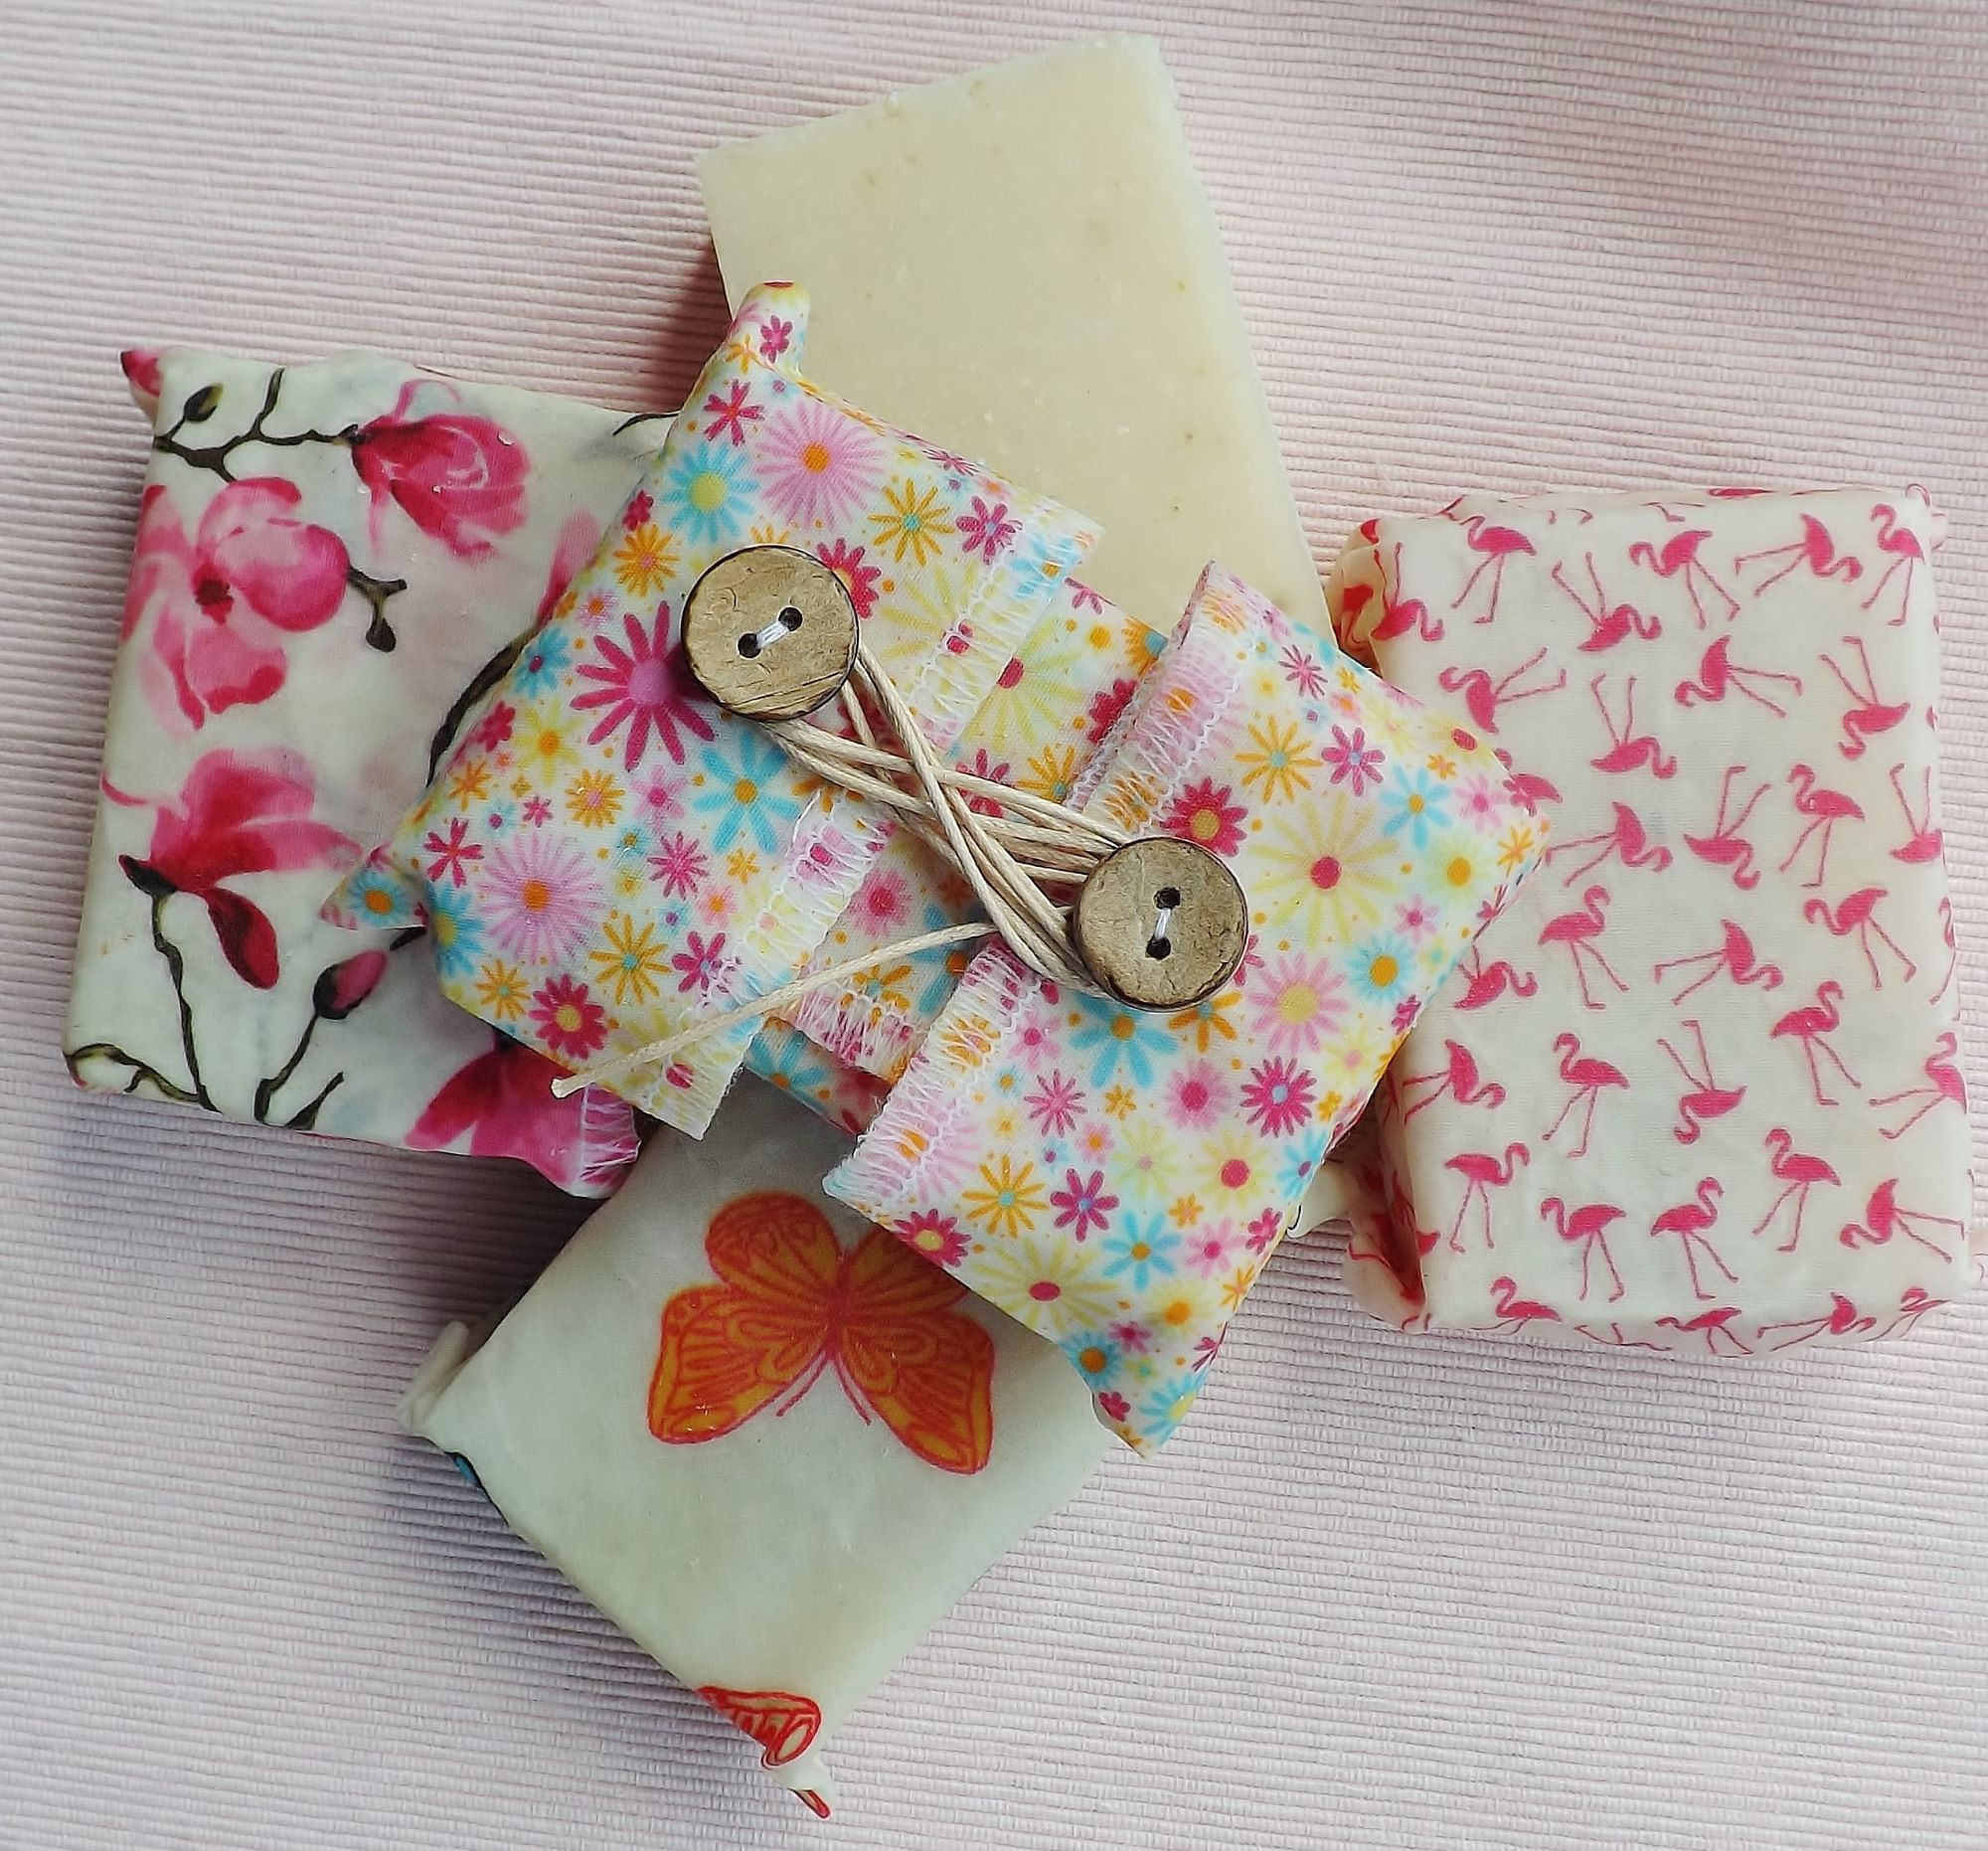 V-Eco Pamper Packs,  a collection of five small bars of soap with four of them wraps in waxed fabric with floral, butterlfy and flamingo designs